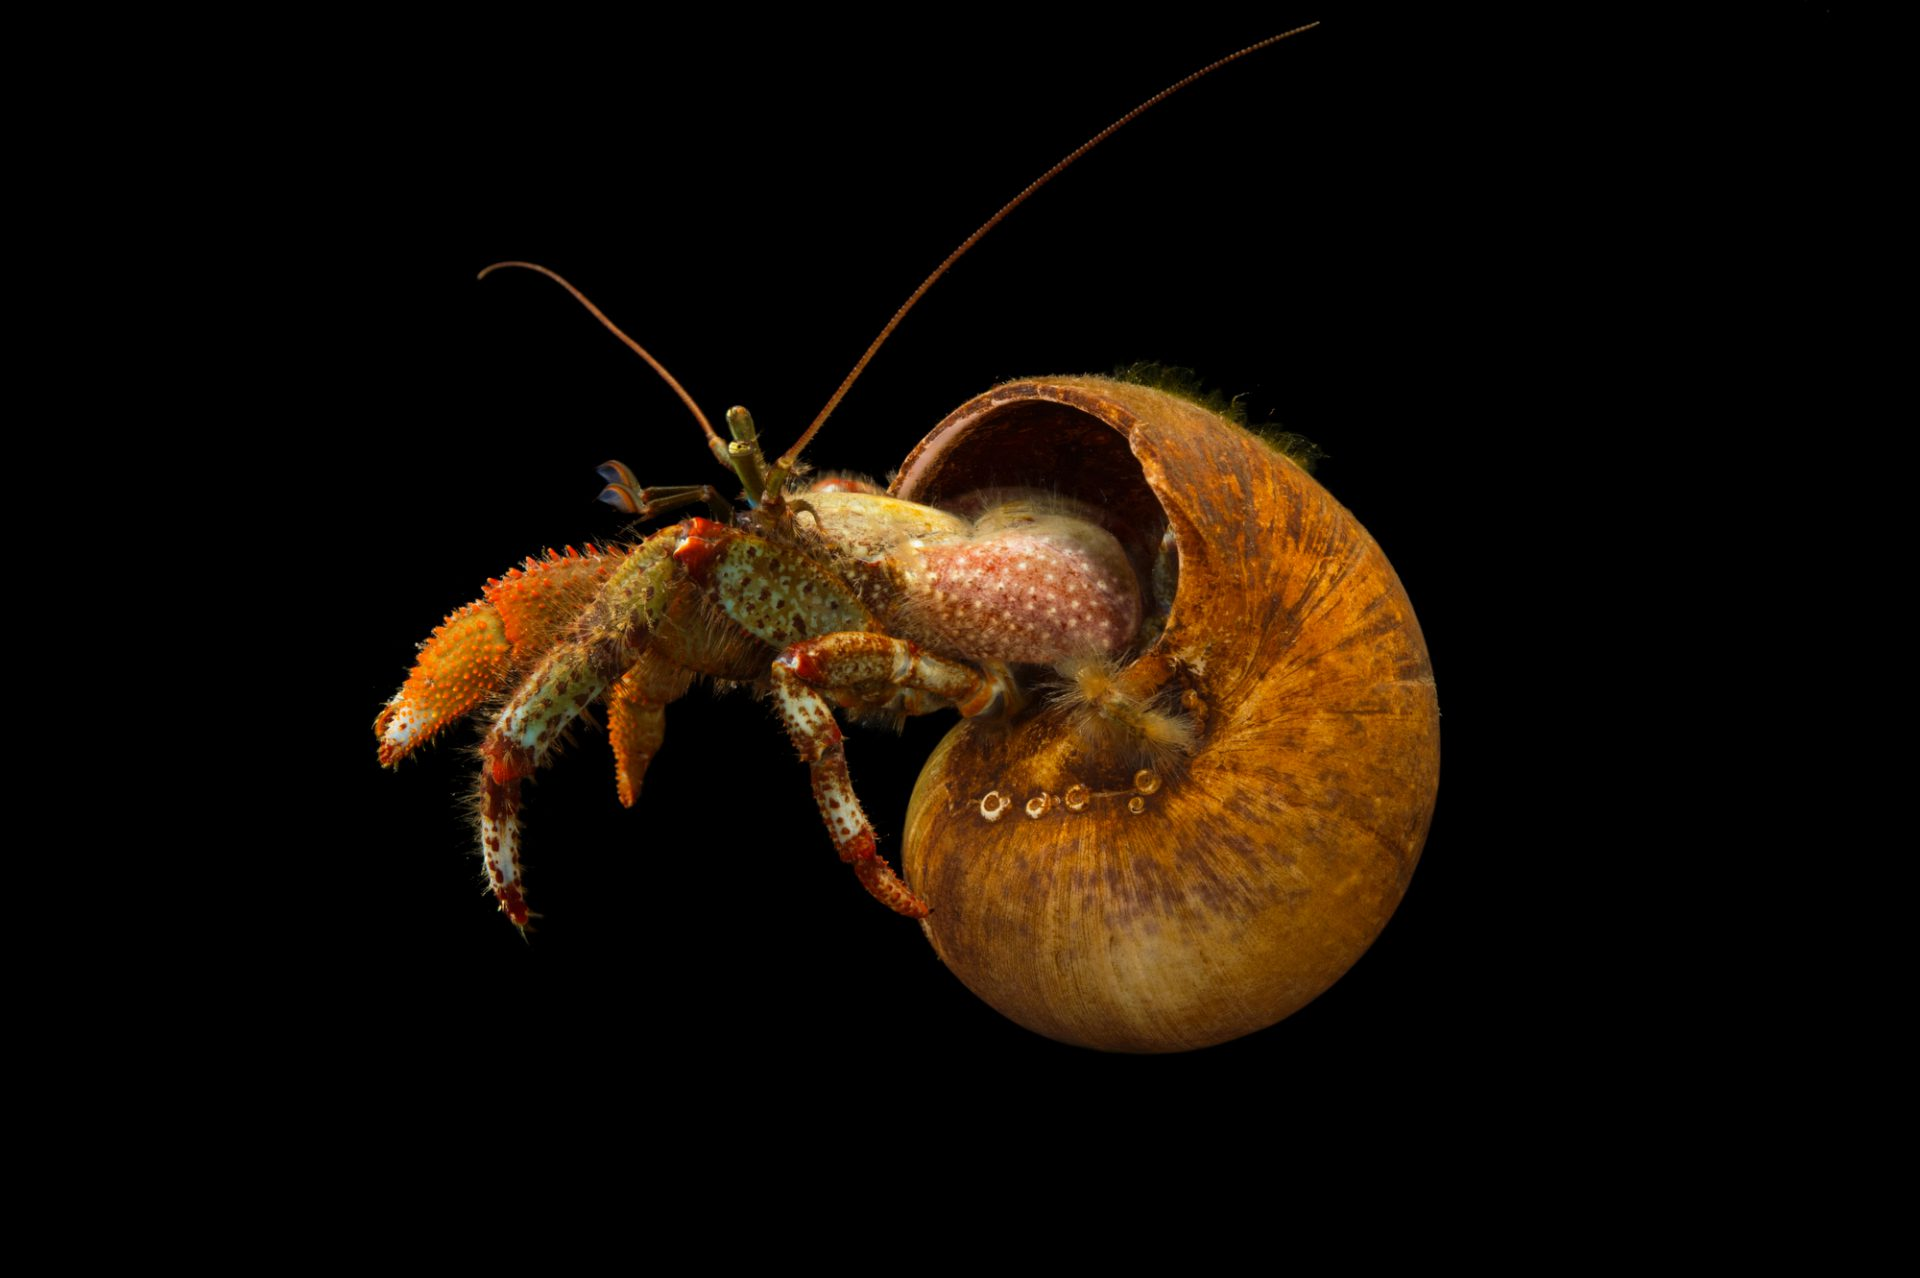 Photo: Bering hermit crab (Pagurus beringanus) at the Alaska SeaLife Center.